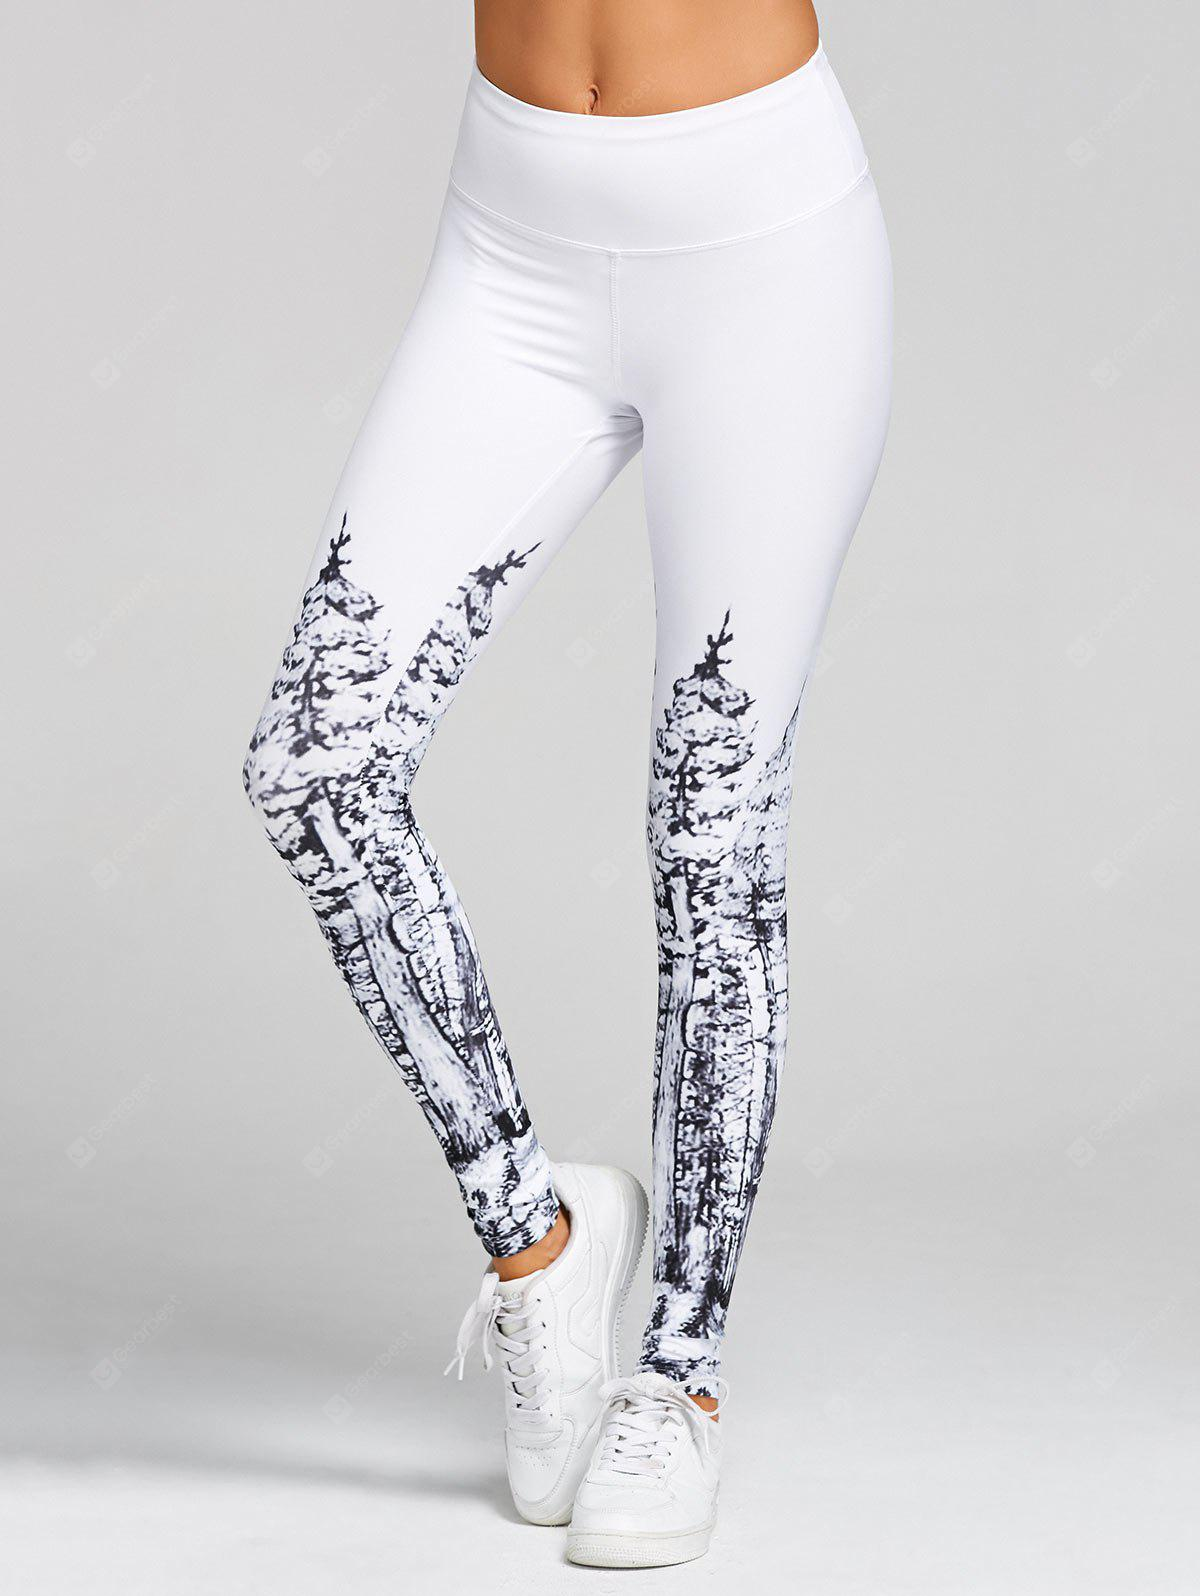 Weihnachtsbaum Print hohe Taille Leggings